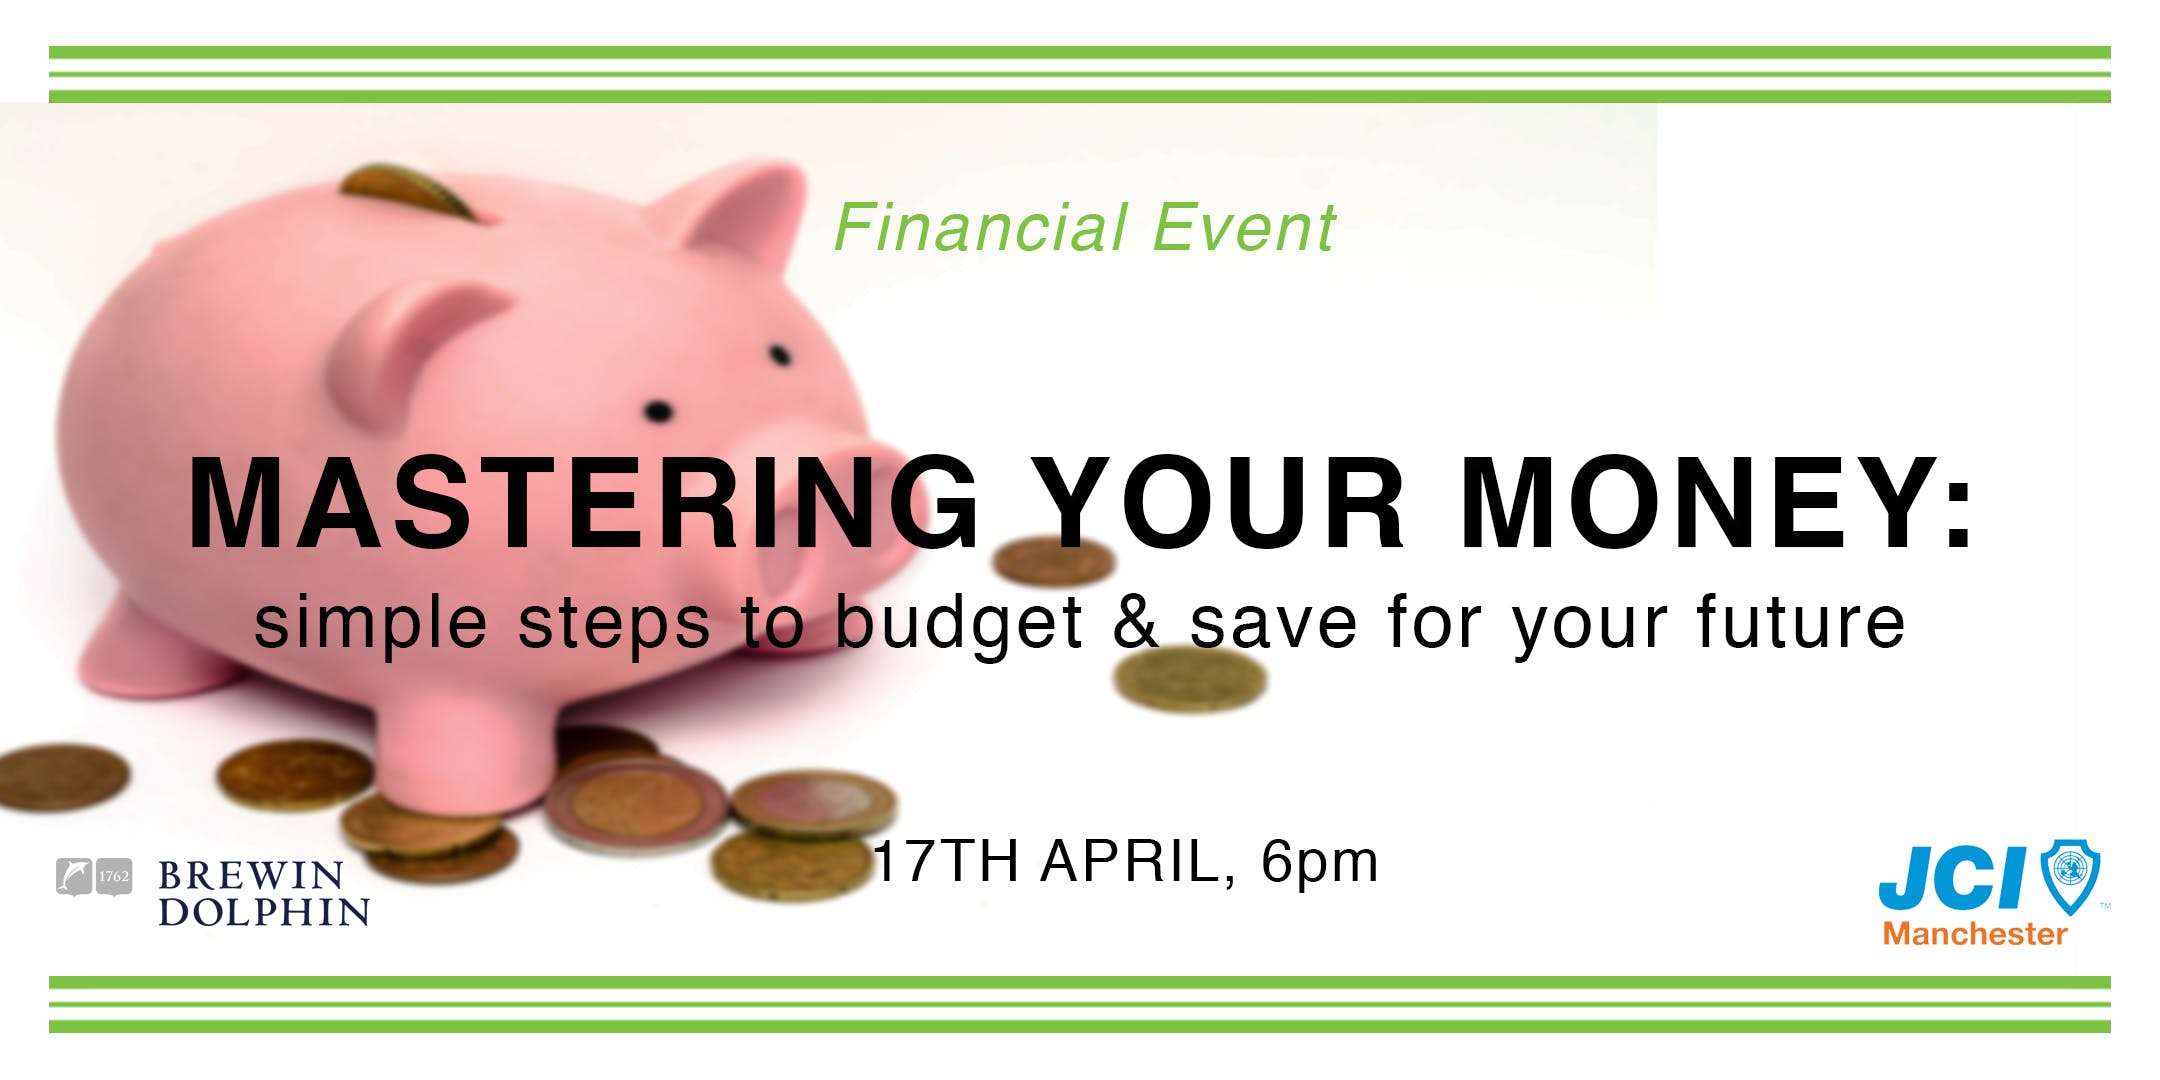 Mastering your Money - Simple steps to budget